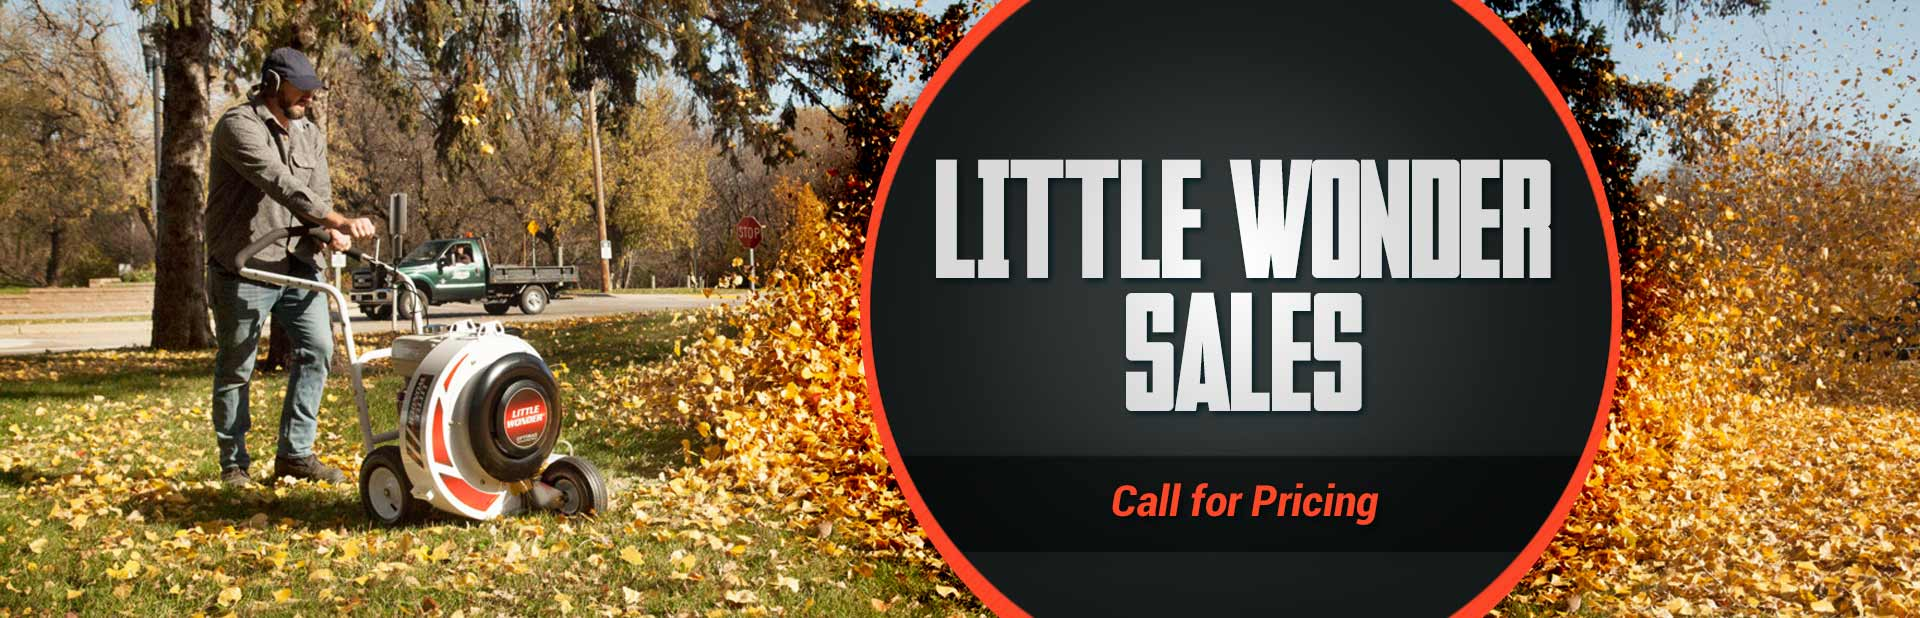 Little Wonder Sales: Call (845) 221-0222 for pricing.